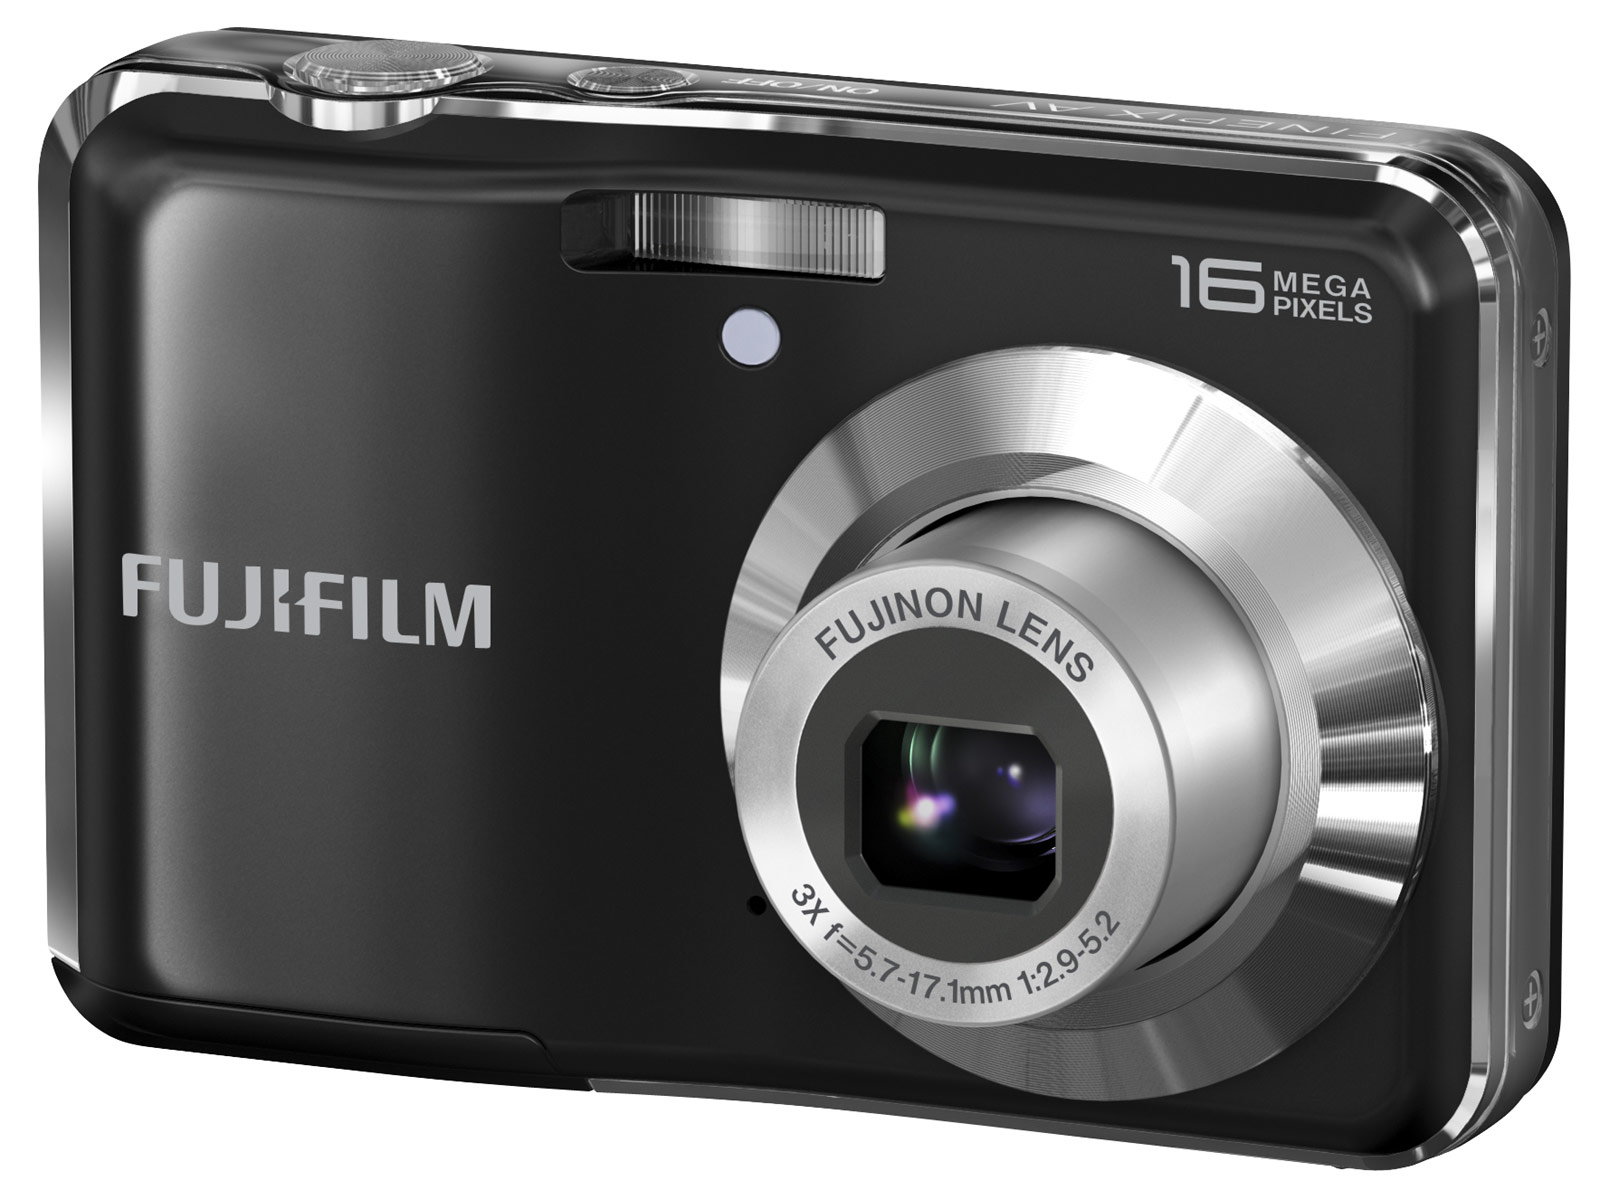 The Fujifilm FinePix AV250, shown below, has a 16mp sensor, 3x optical